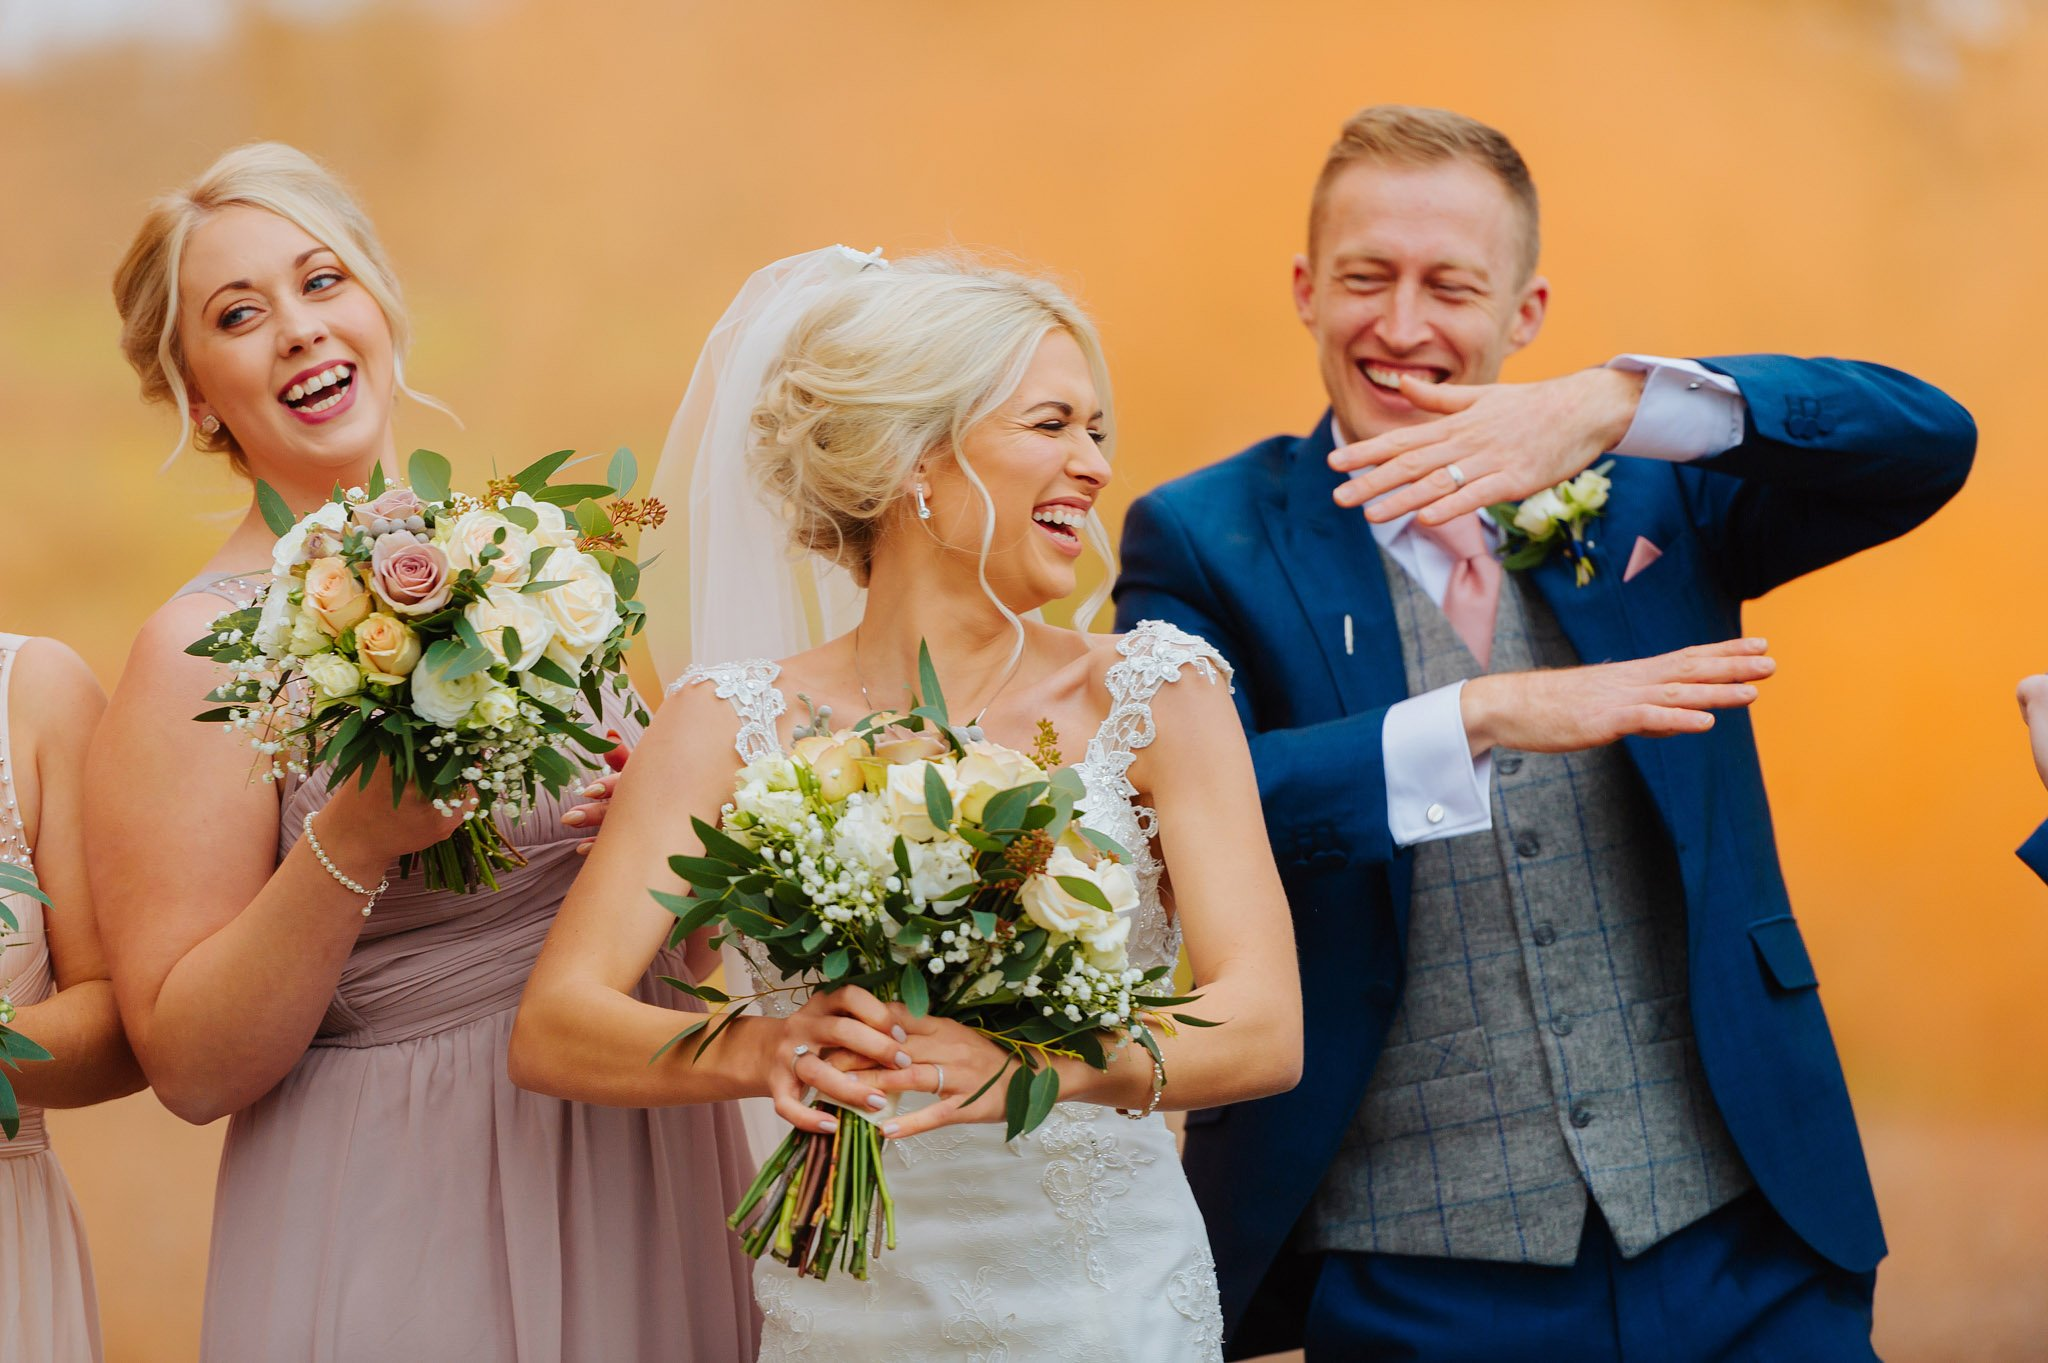 Lemore Manor wedding, Herefordshire - West Midlands | Sadie + Ken 81